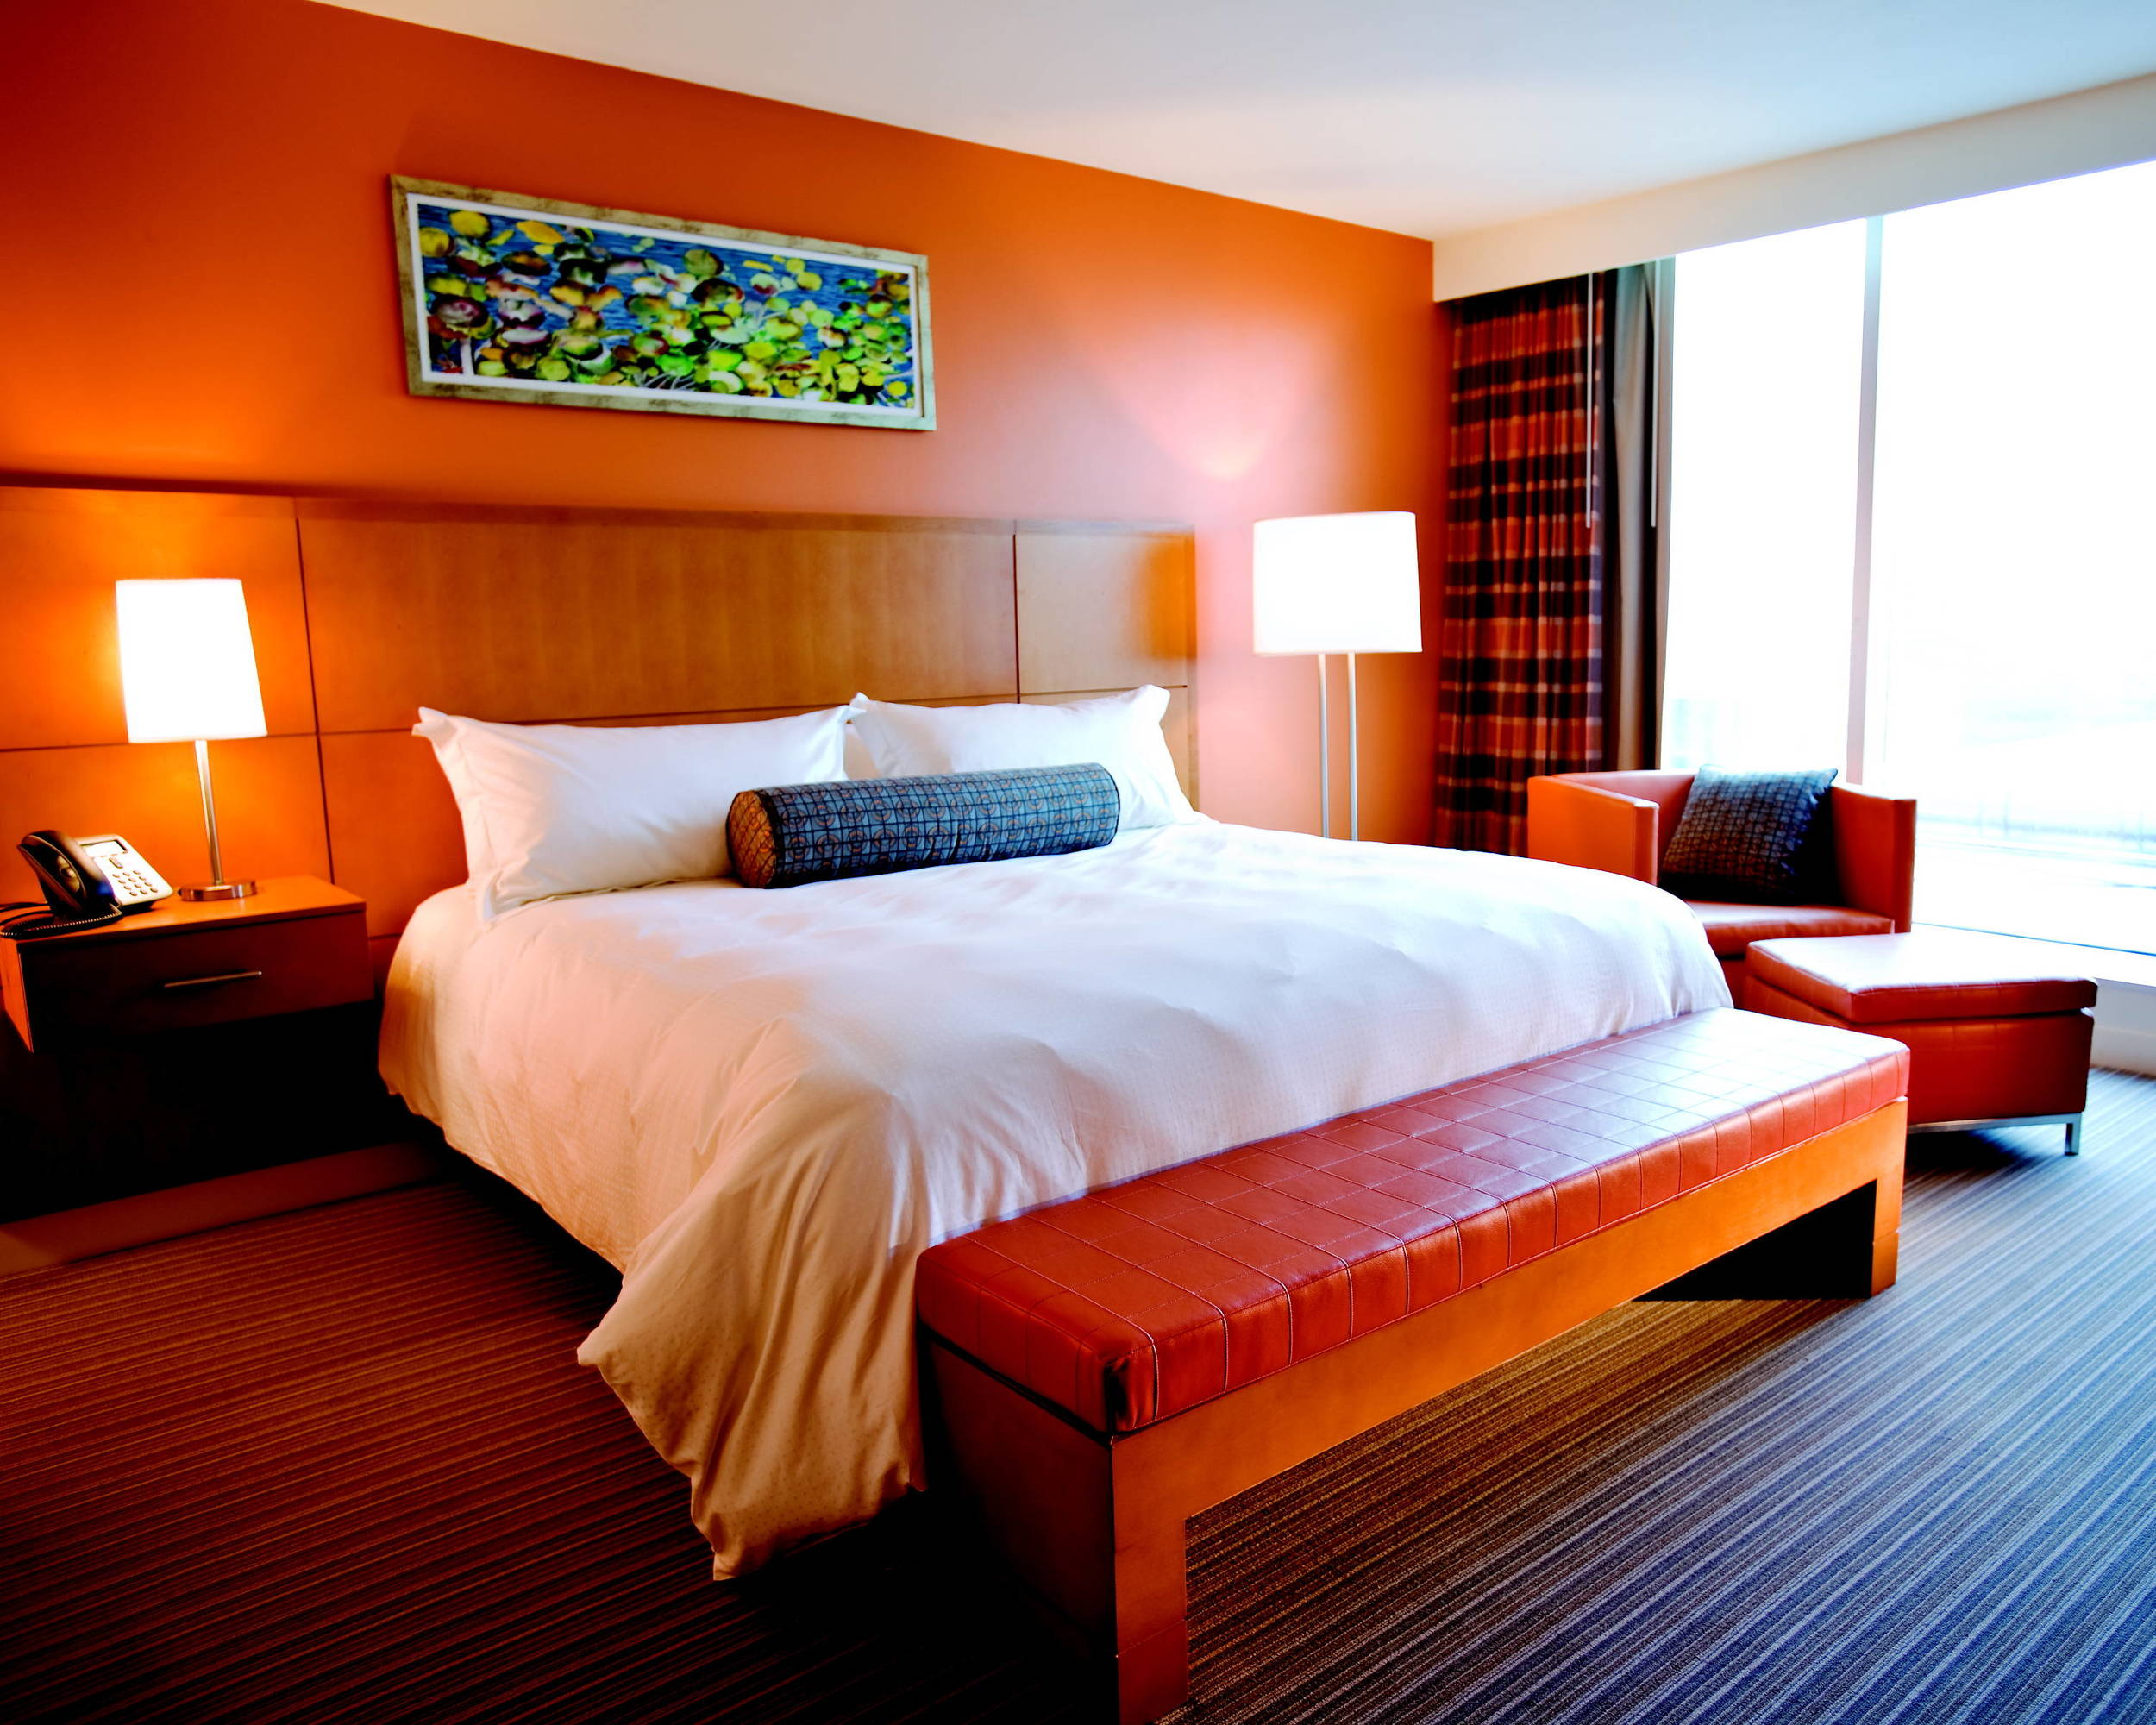 greektown_hotel_room_king-sized_bed.jpg